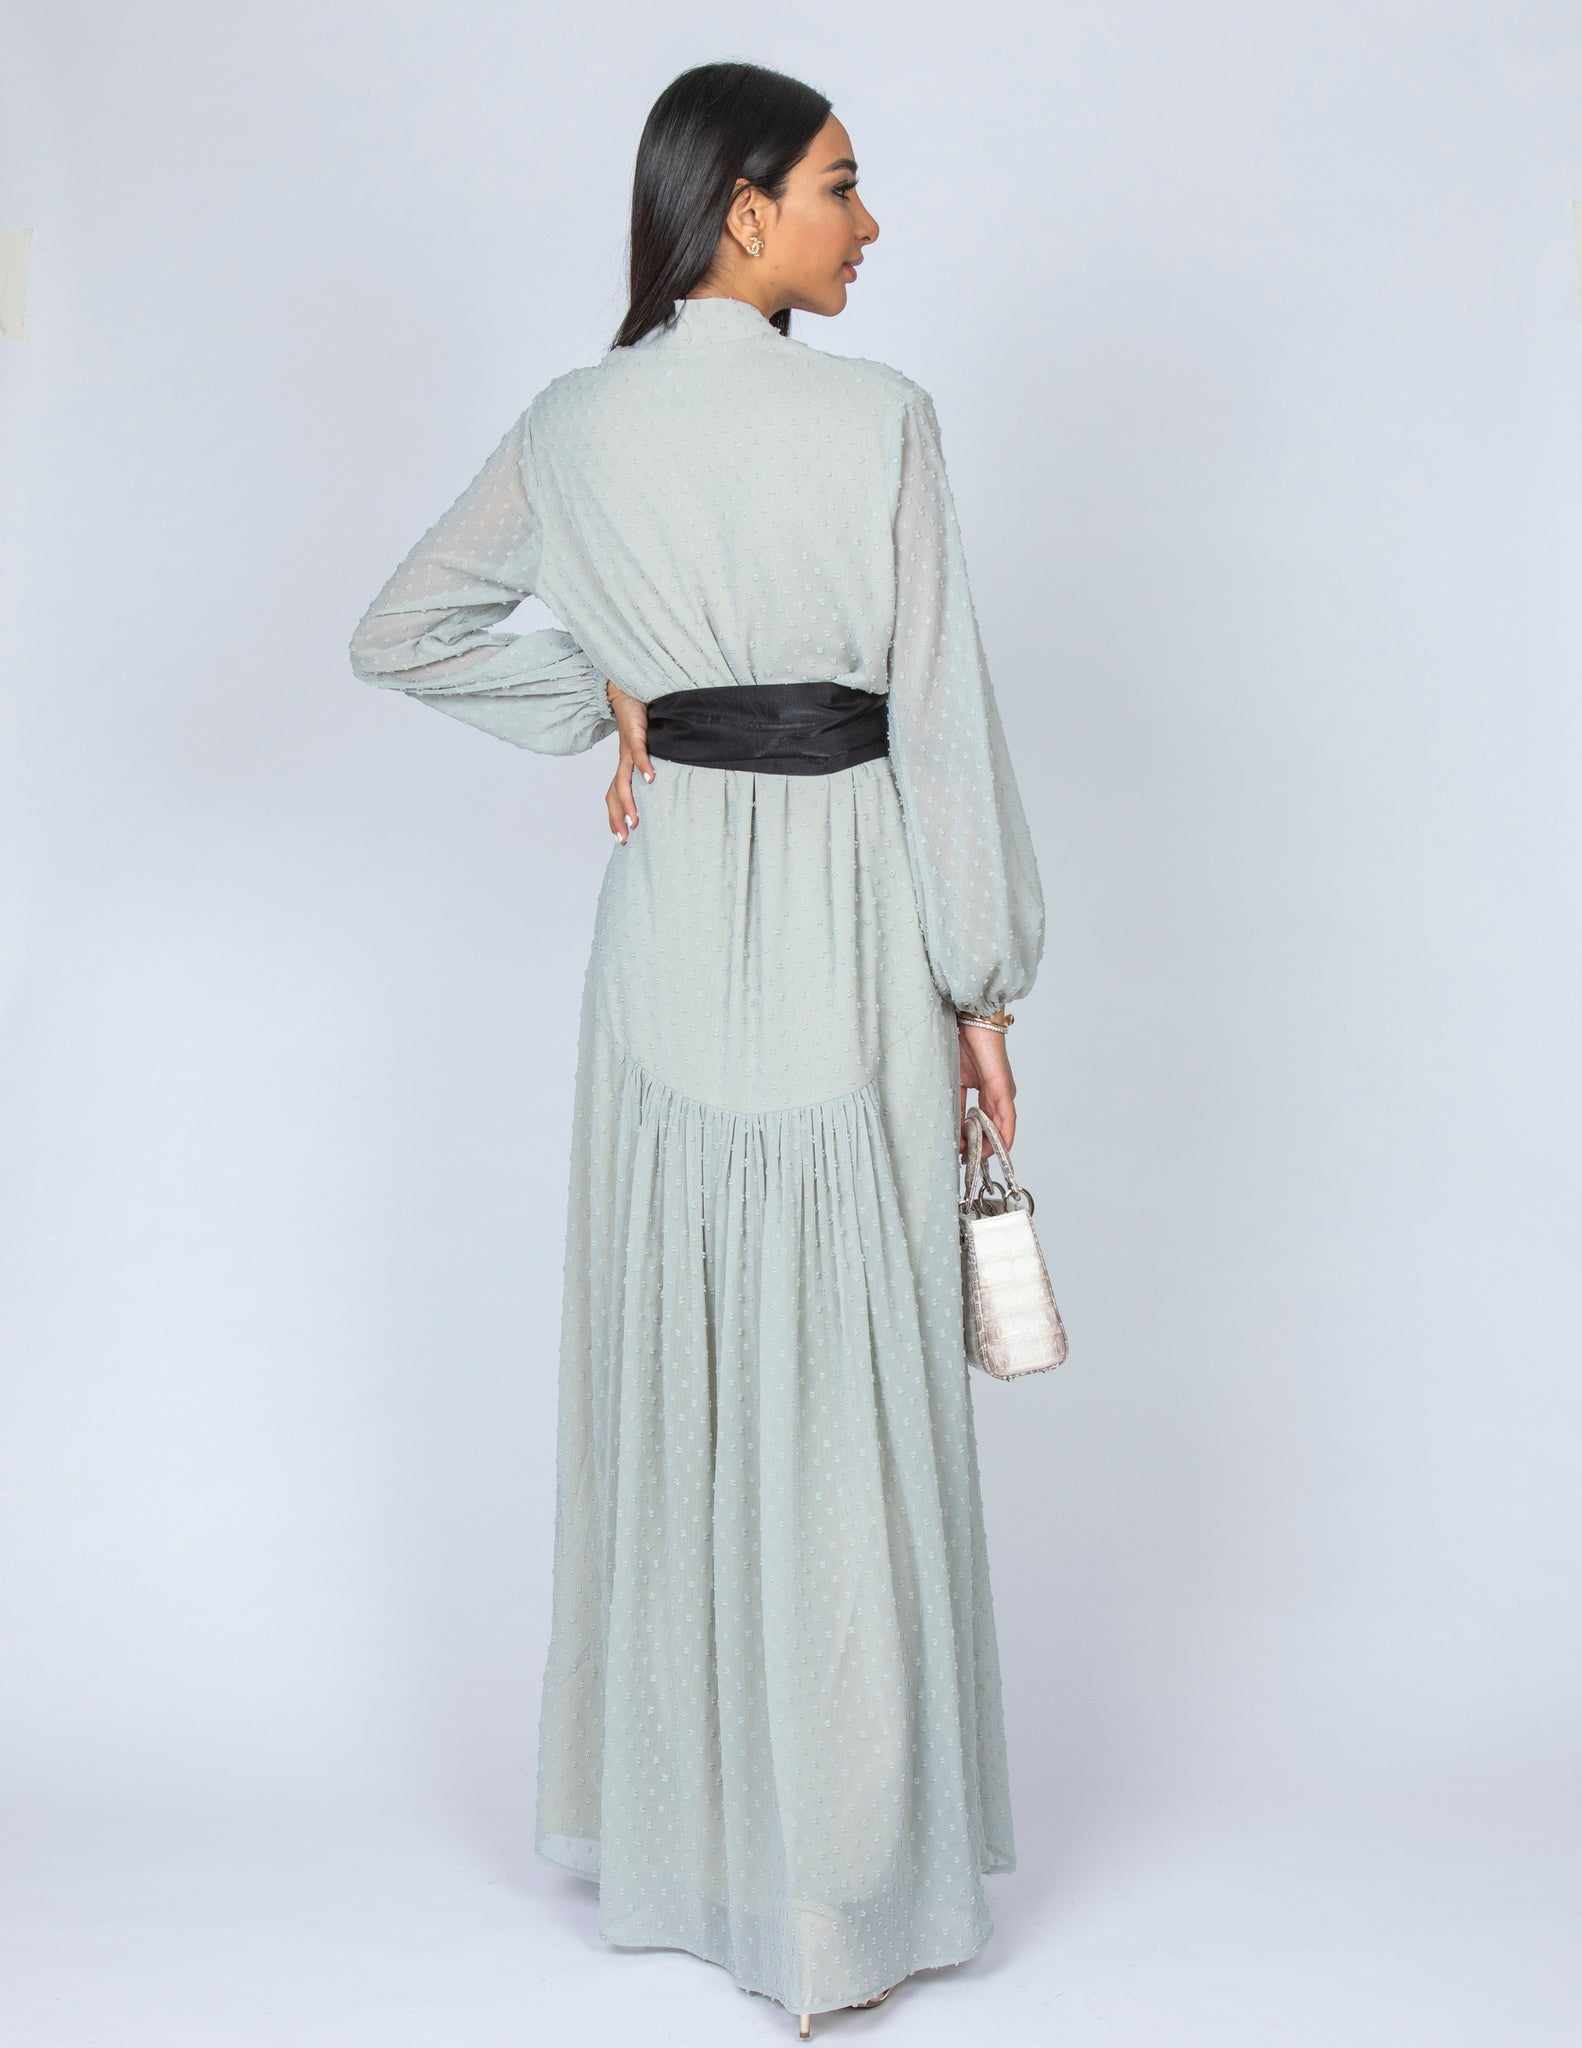 SS20 LAILA DROP WAIST CHIFFON DRESS